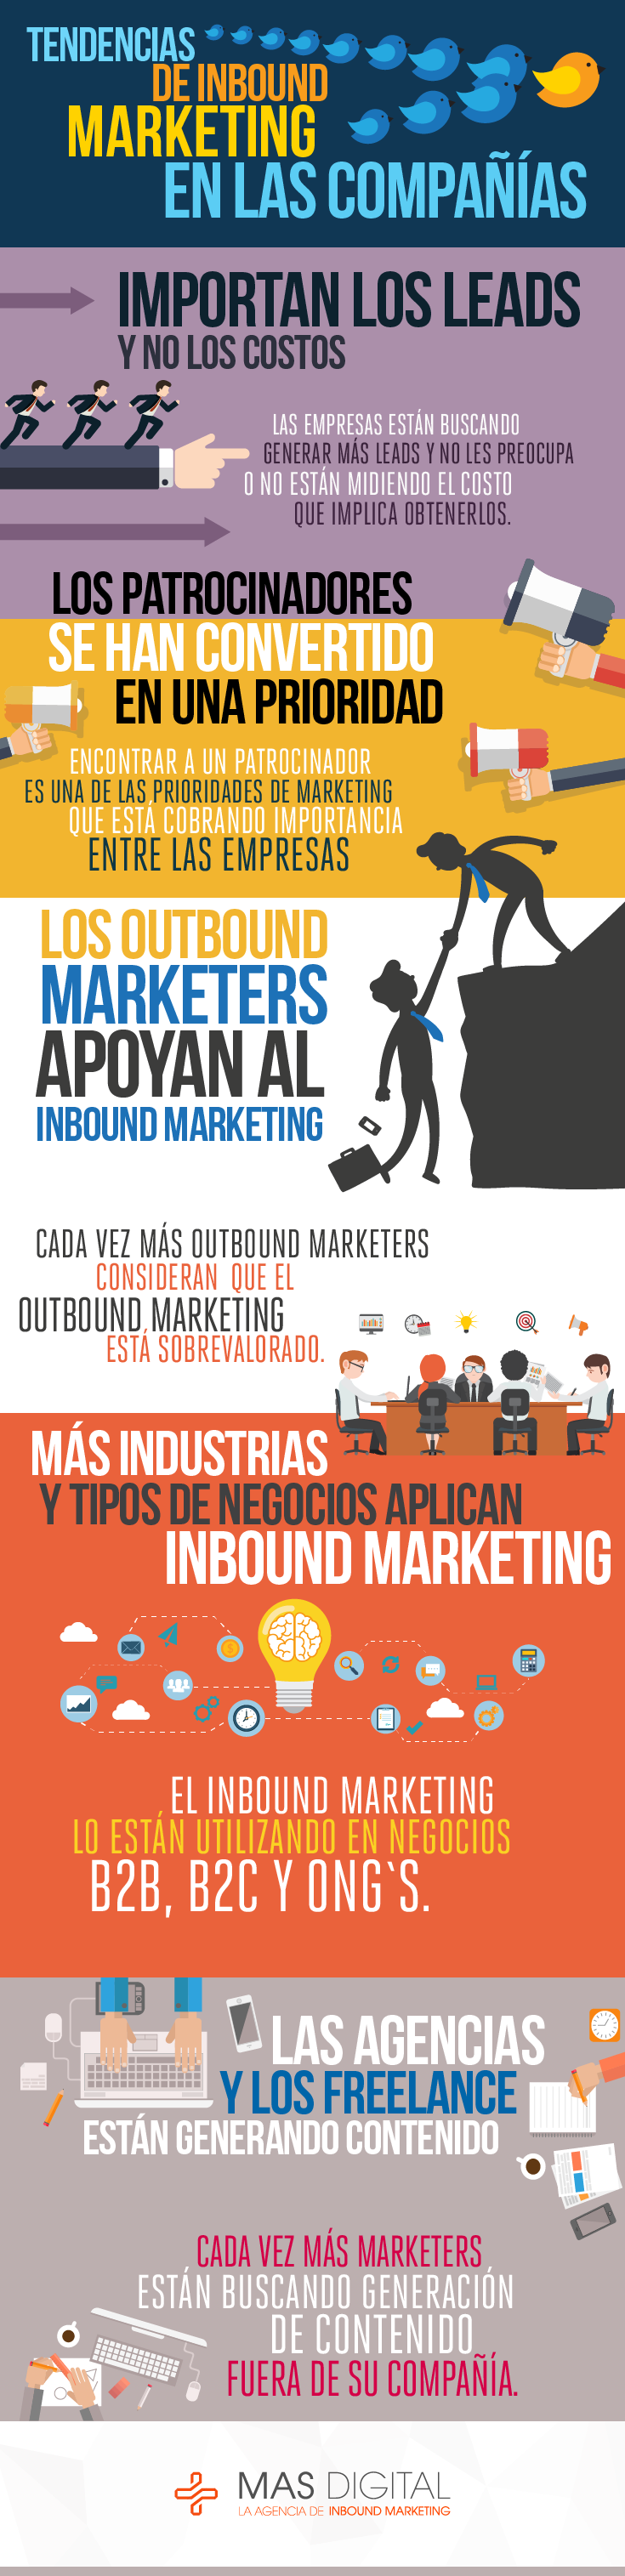 Tendencias de Inbound Marketing en las compañías